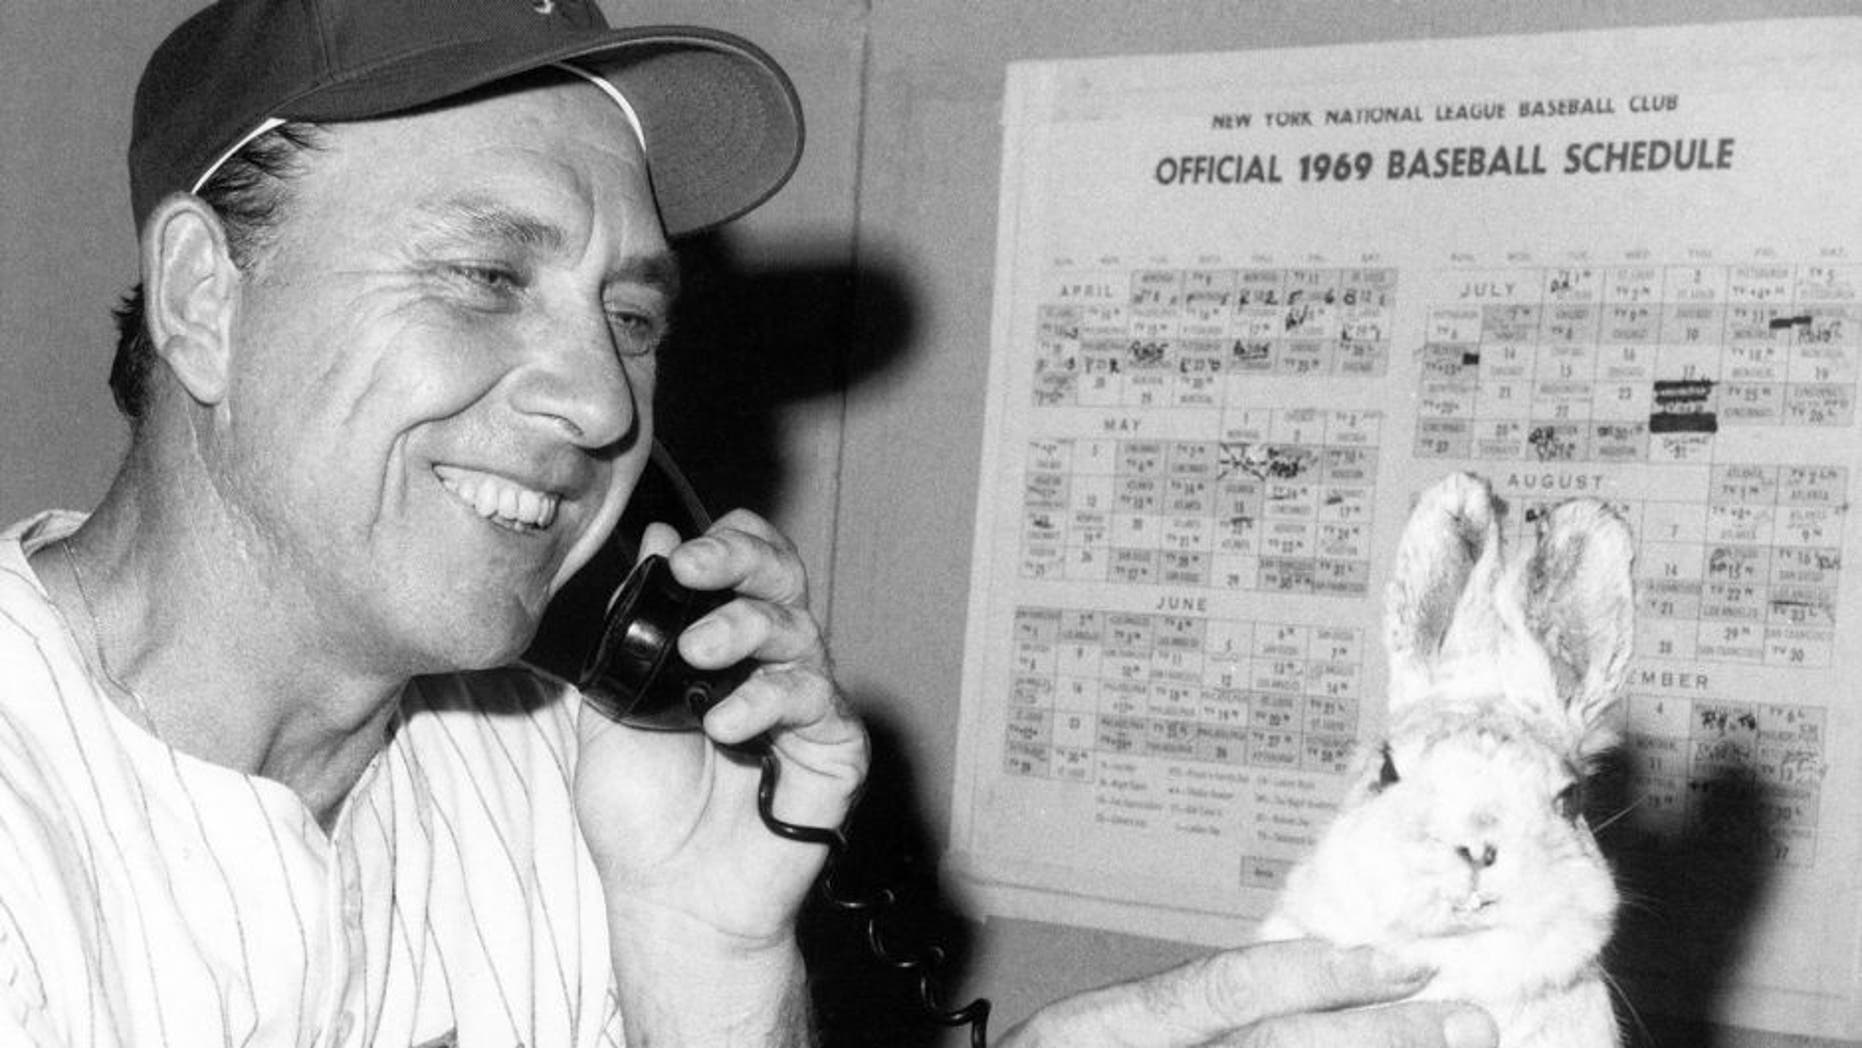 FLUSHING, NY - SEPTEMBER 8: Manager Gil Hodges of the New York Mets rubs a stuffed rabbit following the game against the Chicago Cubs on September 8, 1969 at Shea Stadium in Flushing, New York. (Photo by B Bennett/Getty Images)